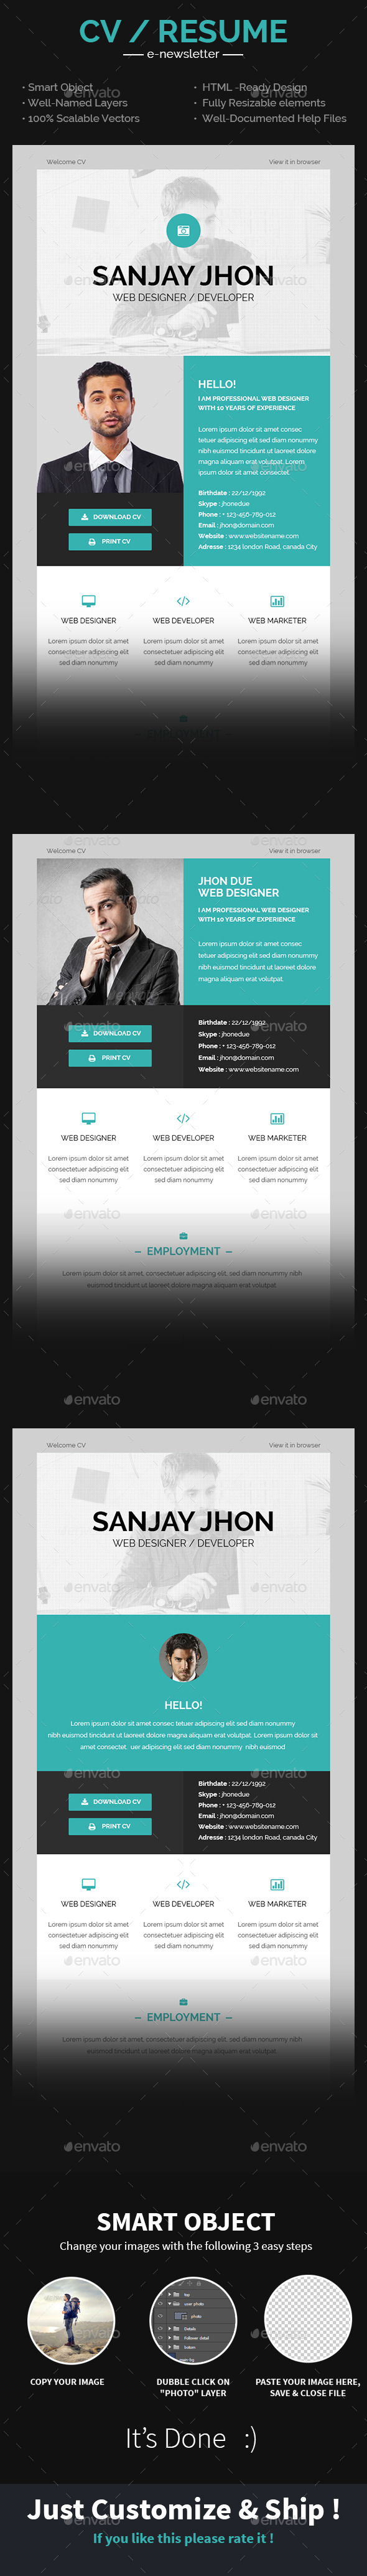 GraphicRiver CV Email Template 9959673